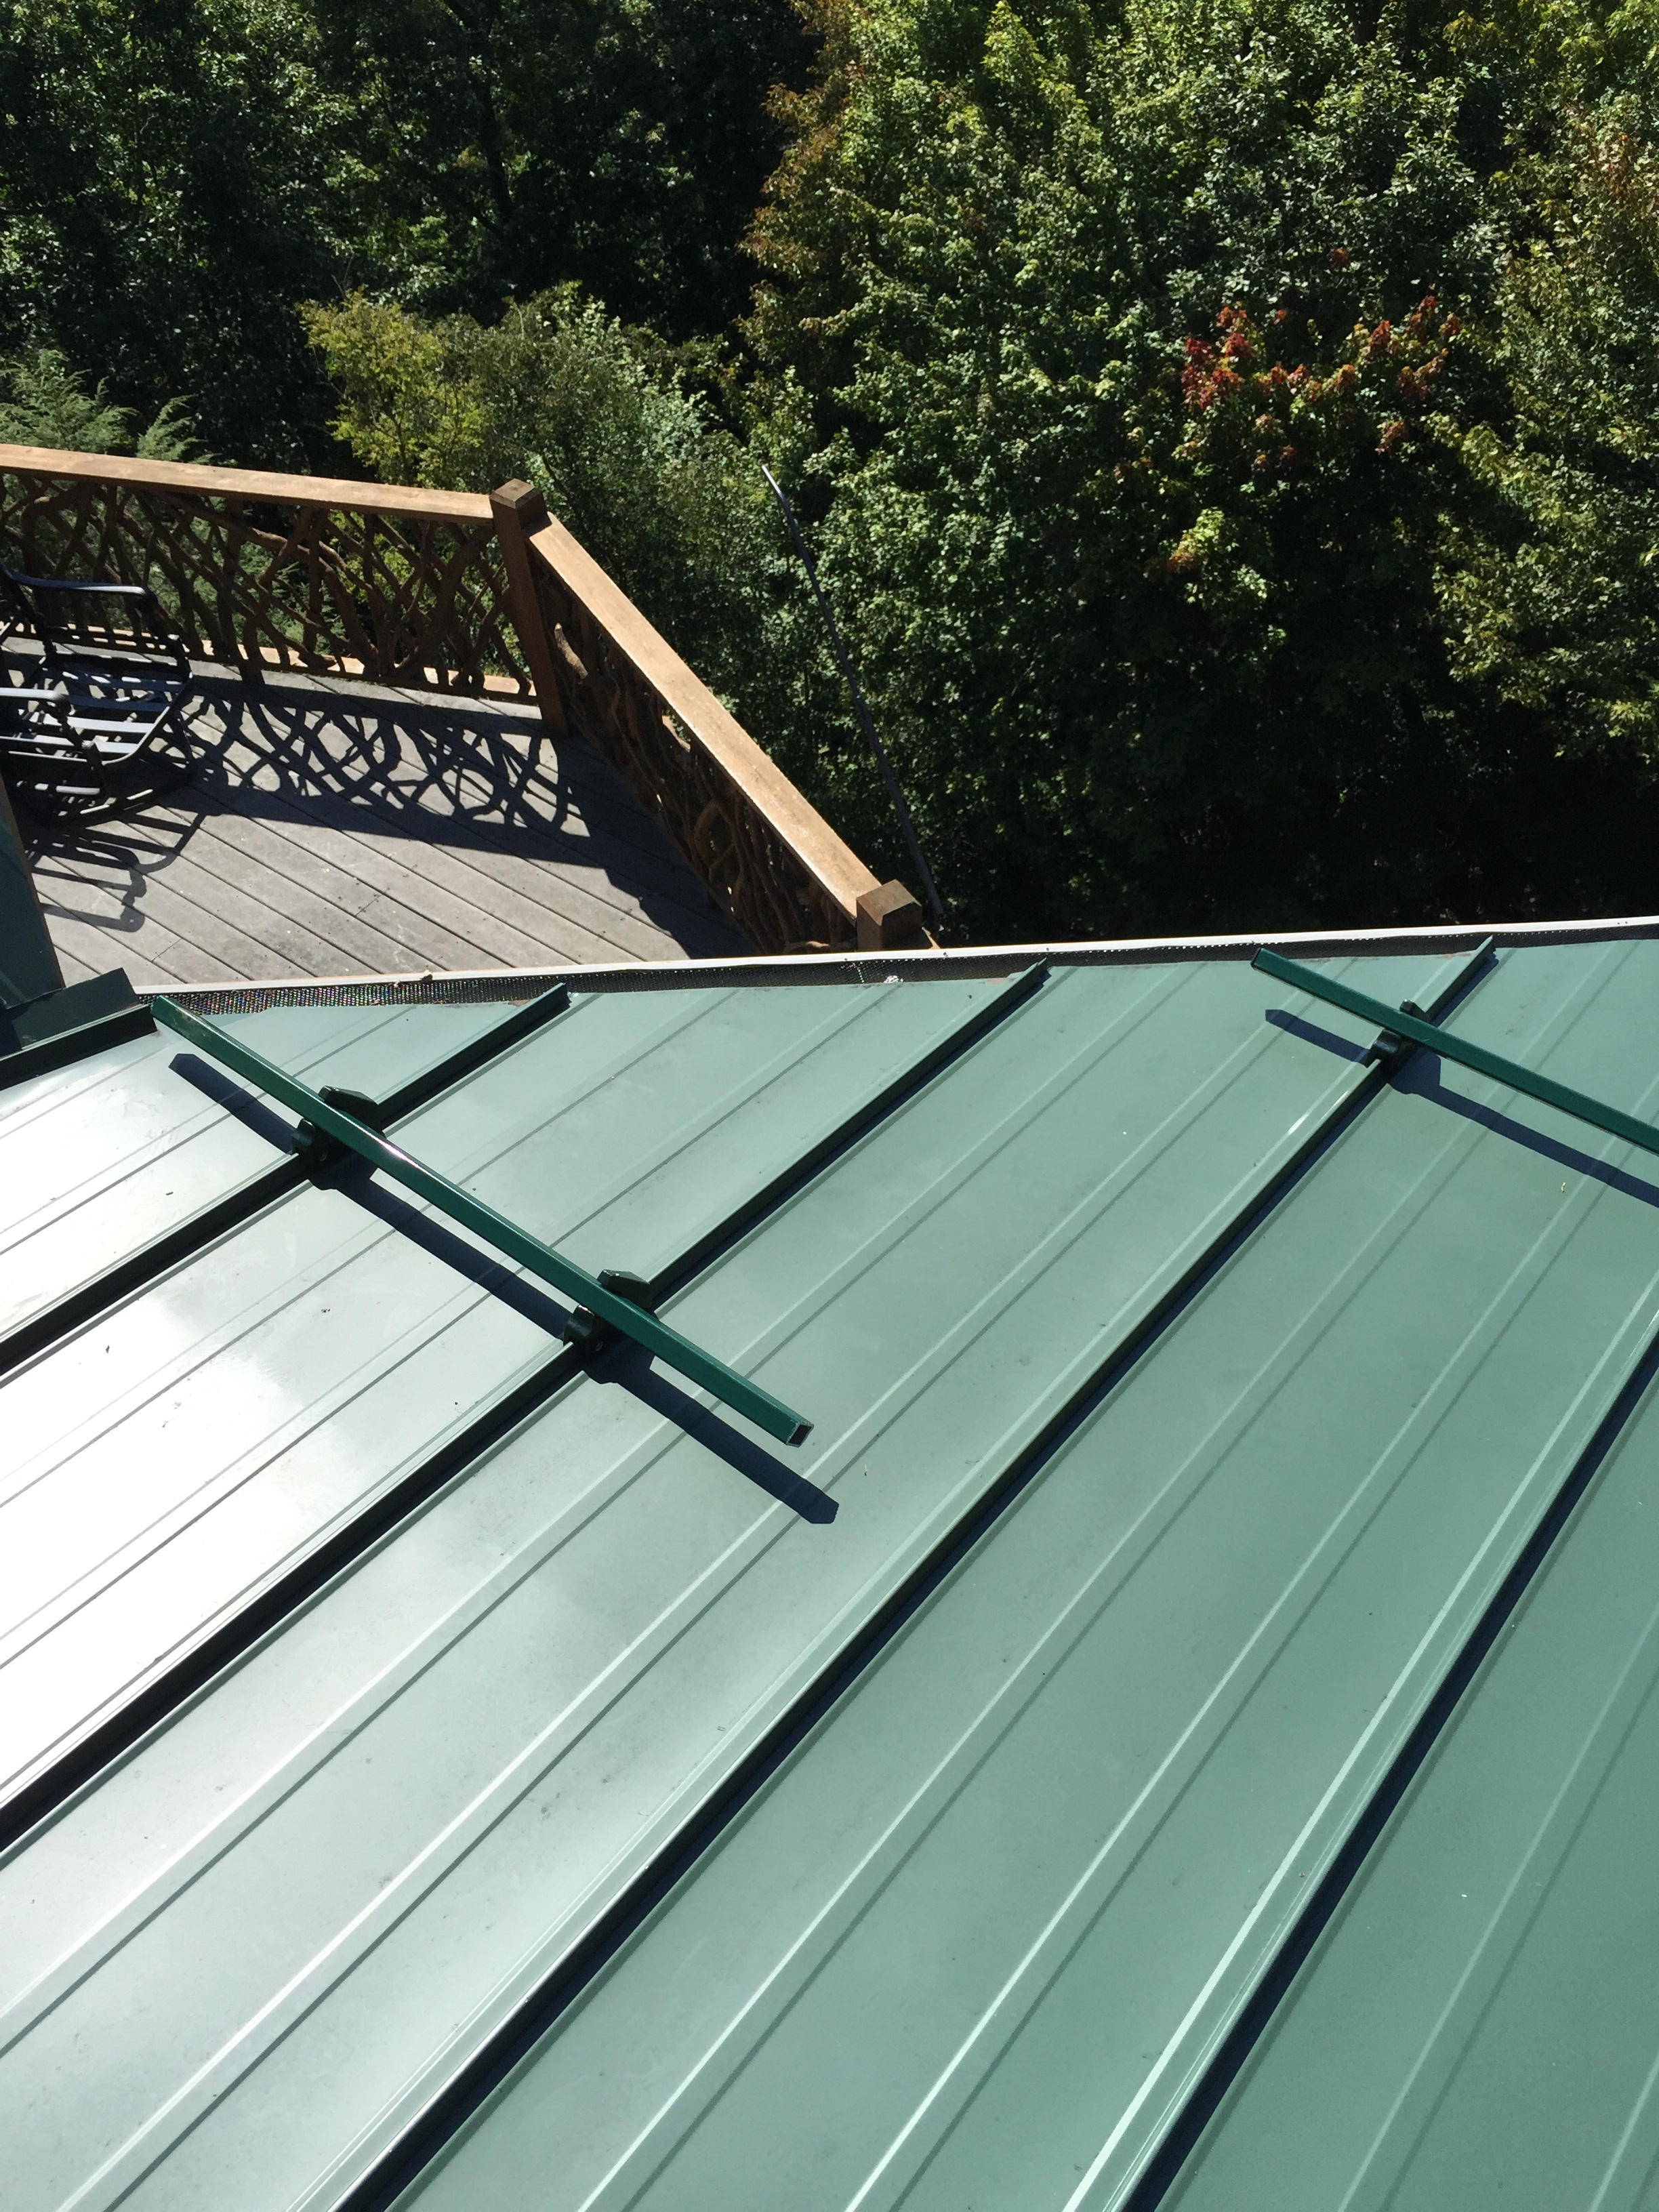 Snow Brakes on a Standing Seam Metal Roof